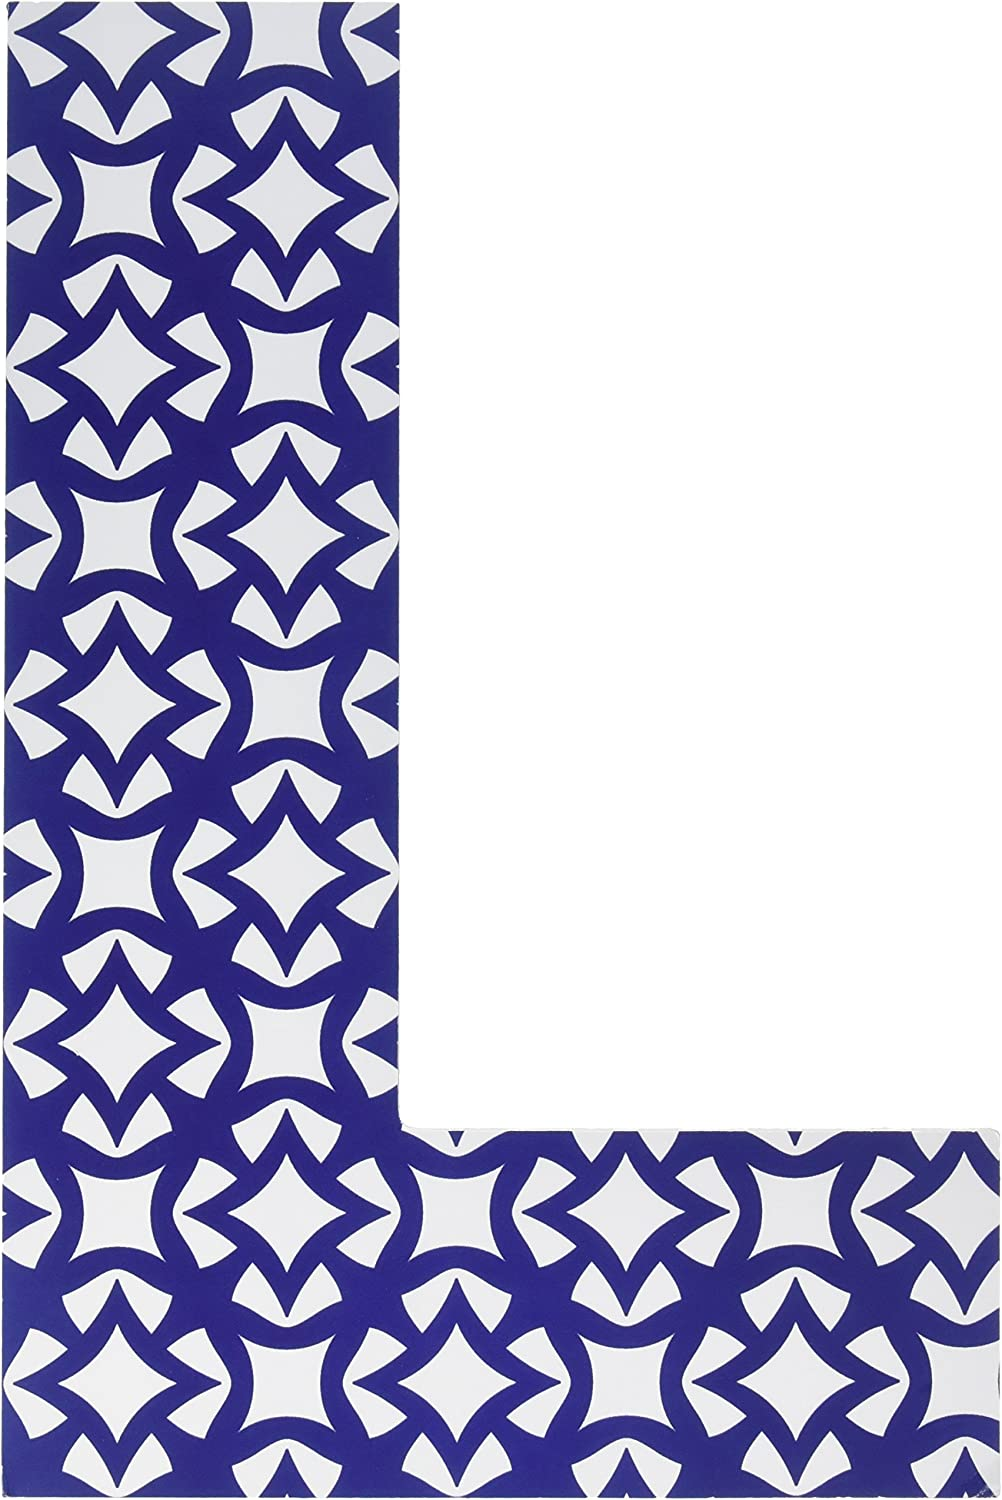 The Home Stupell Home Decor Collection Geometric Hanging Wooden Initial, Navy White, L, 18